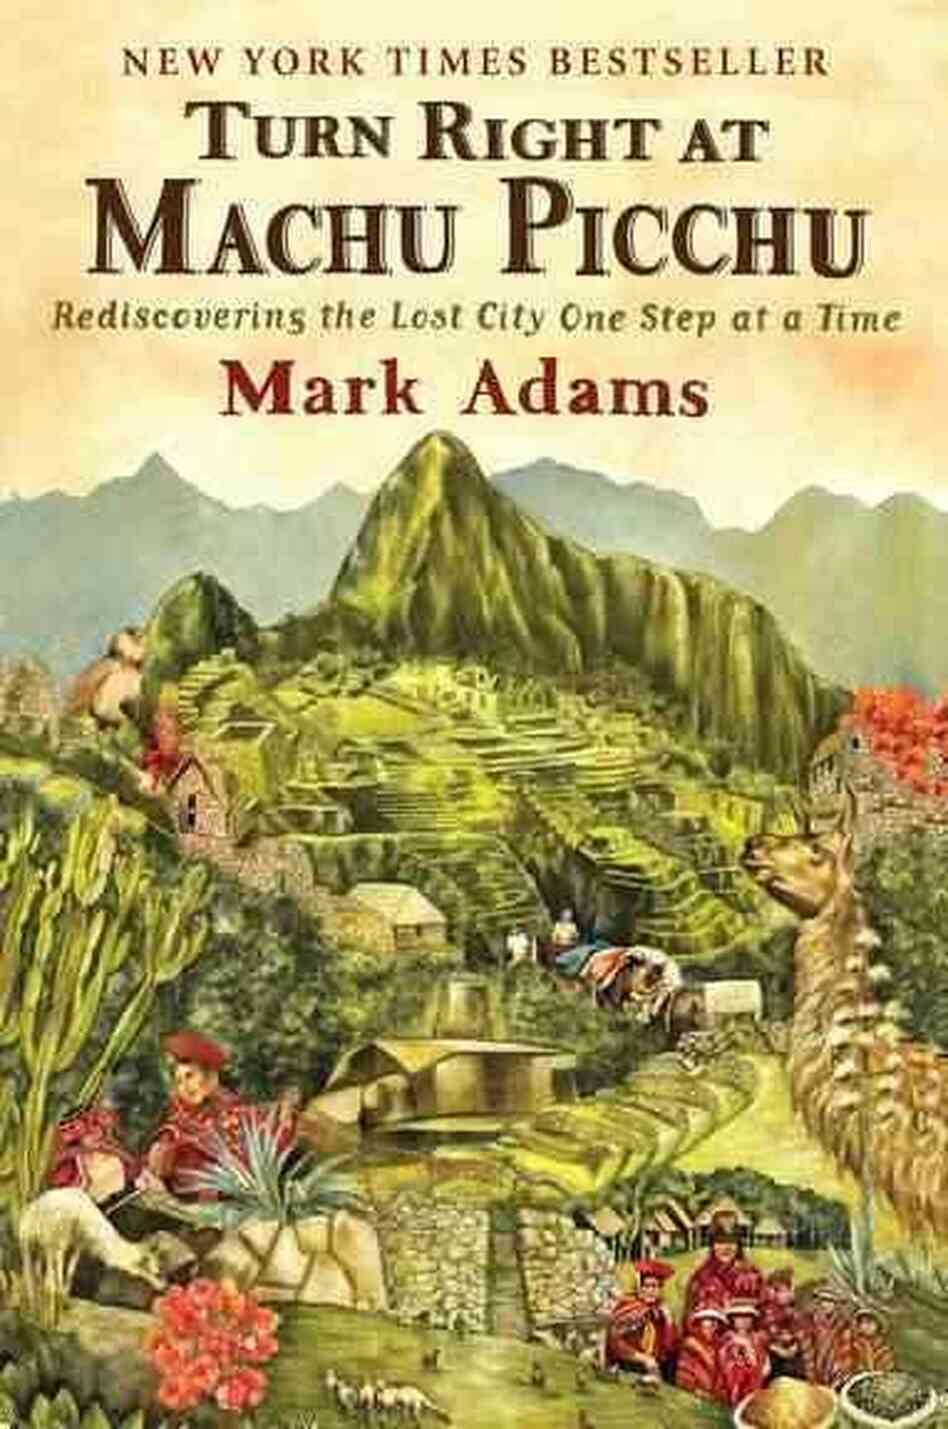 Turn Right at Machu Picchu